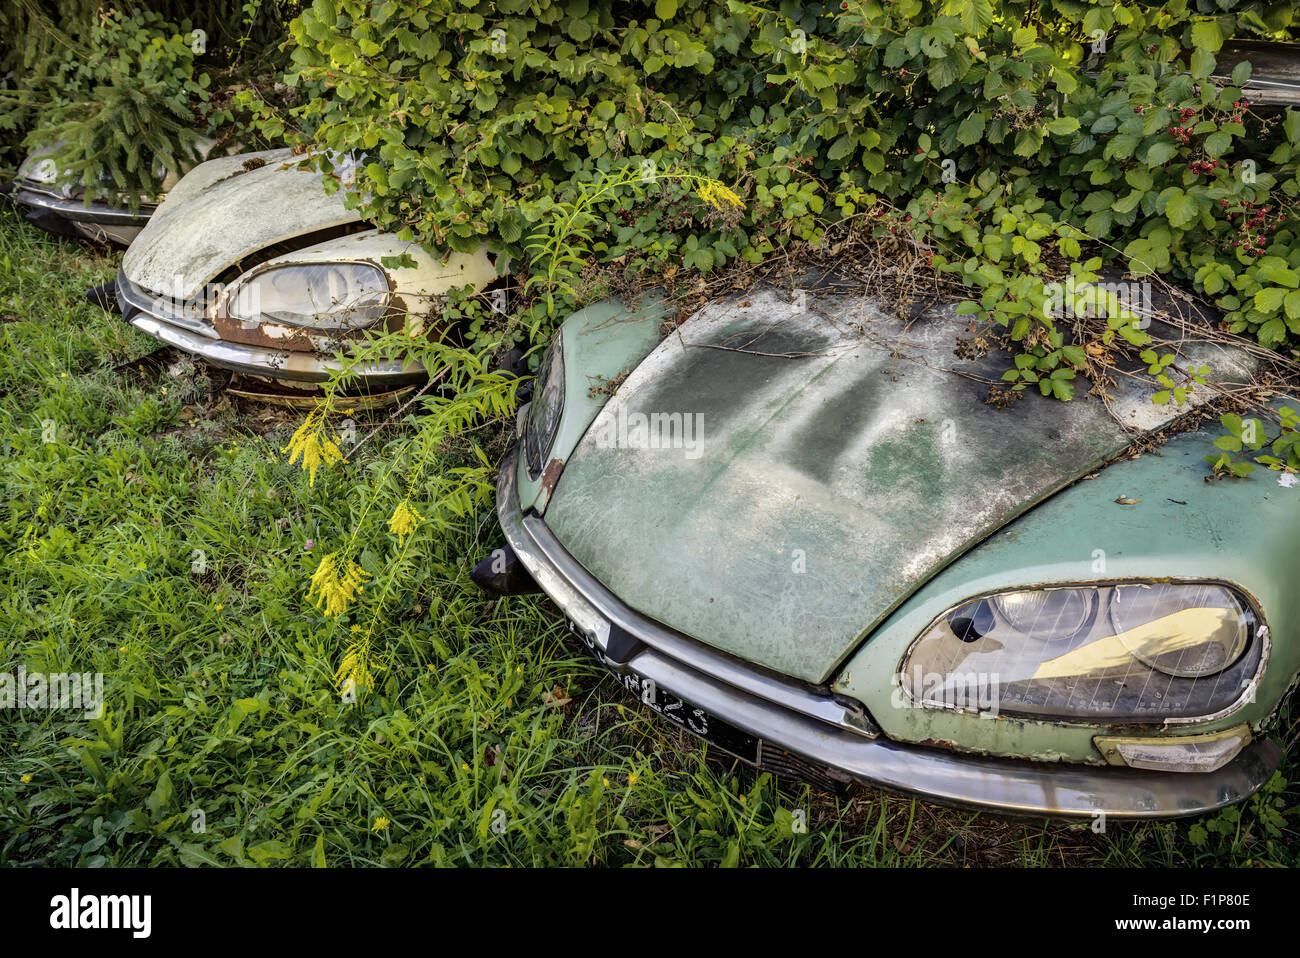 Junk Yard With Overgrown Rotten Citroen Ds Classic Cars Stock